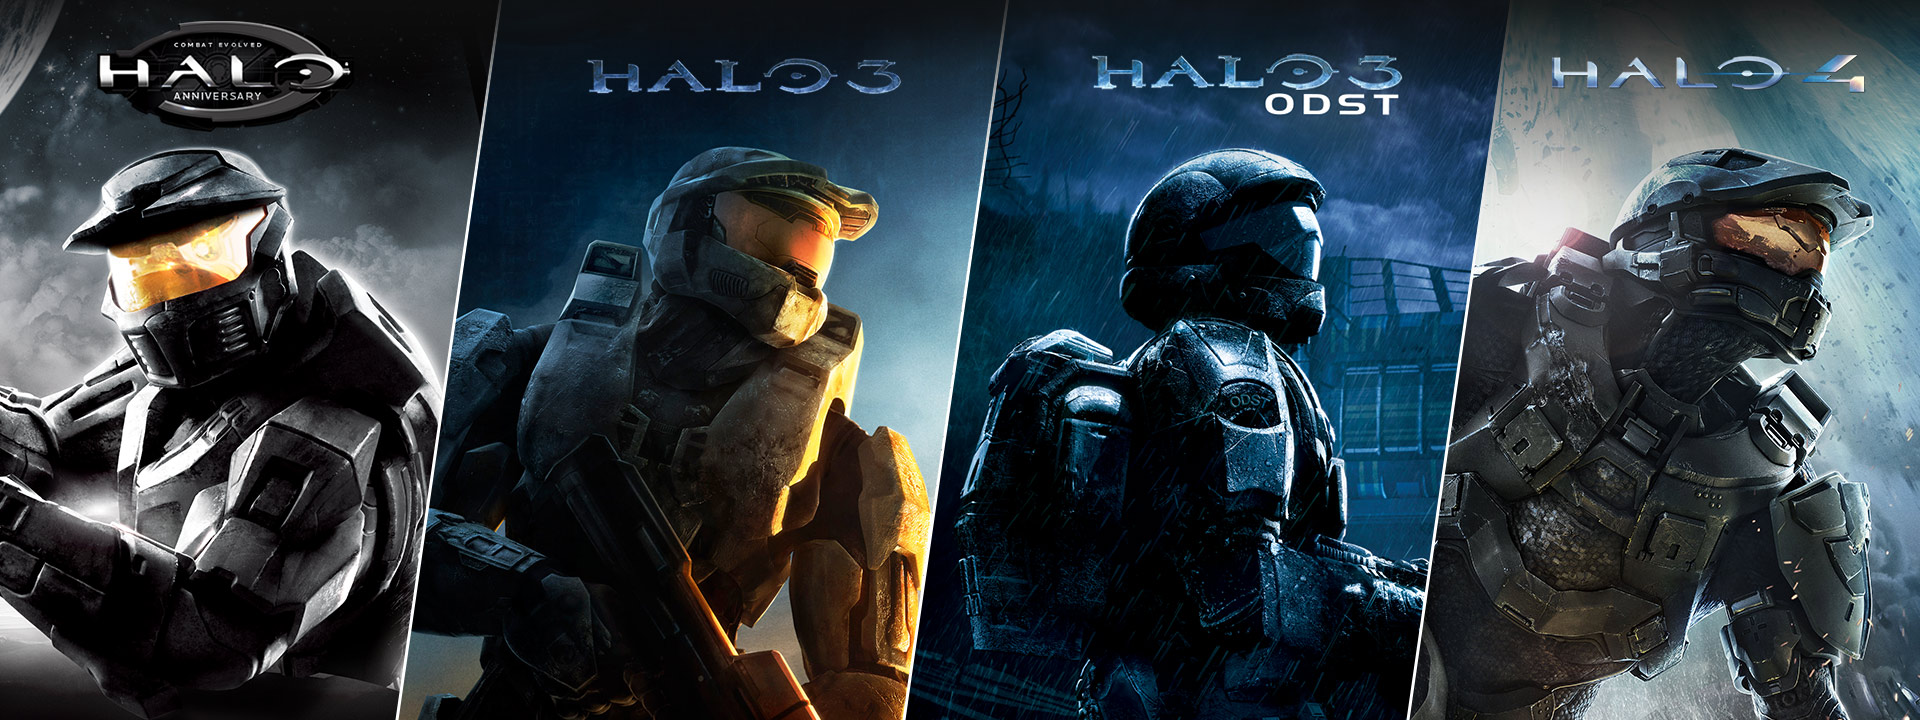 Collage of Halo Anniversary: Halo 3, Halo ODST, Halo 4